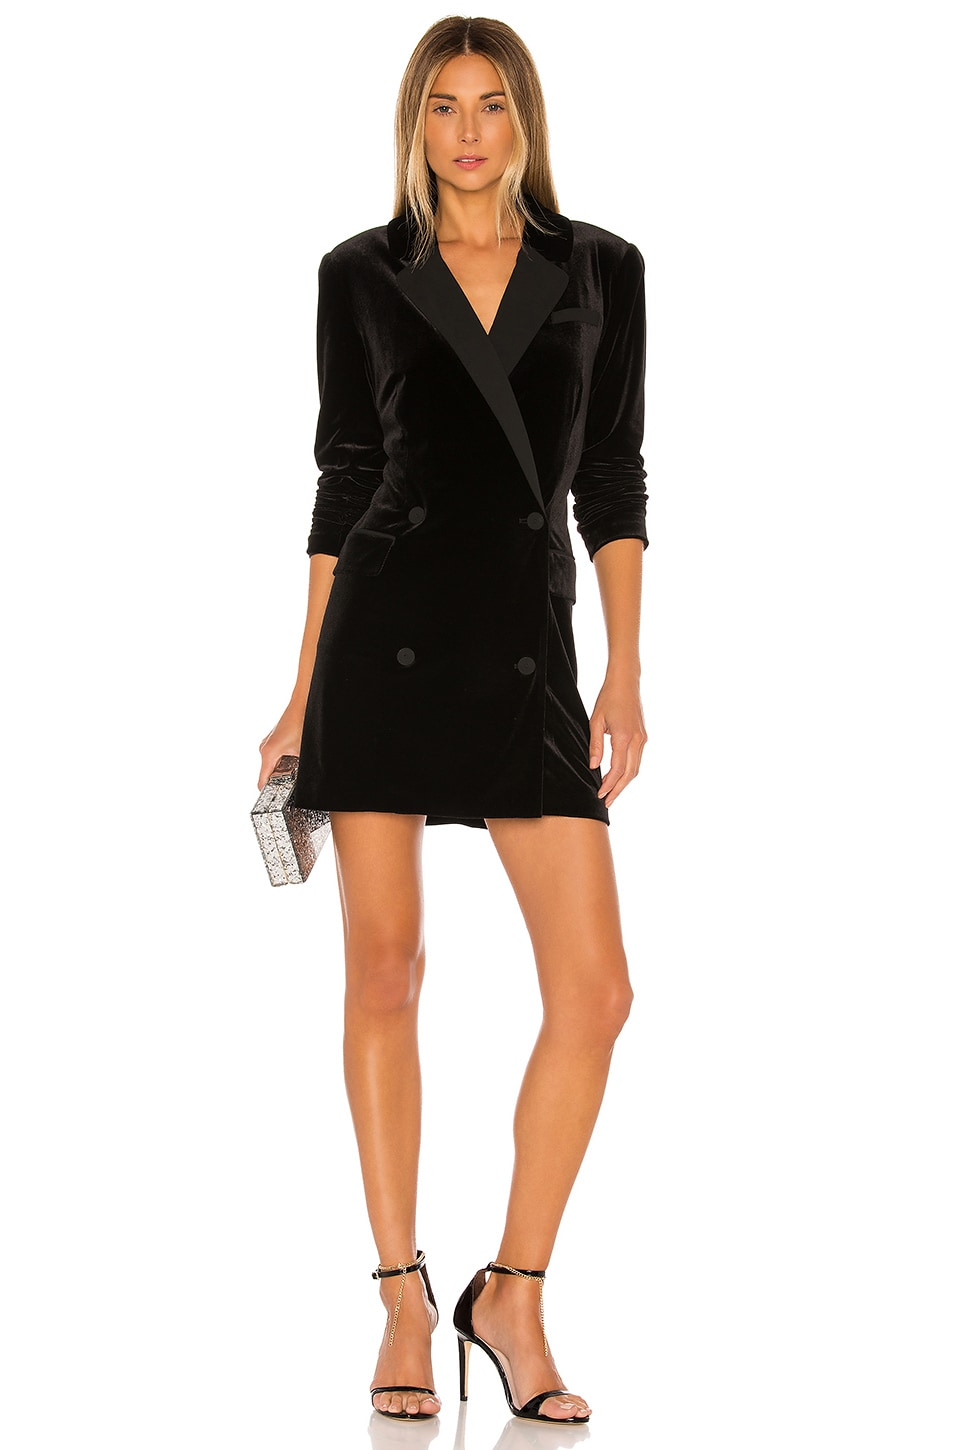 Ruched Velvet Blazer Dress             1. STATE                                                                                                                                         Sale price:                                                                       CA$ 141.86                                                                  Previous price:                                                                       CA$ 201.31 7